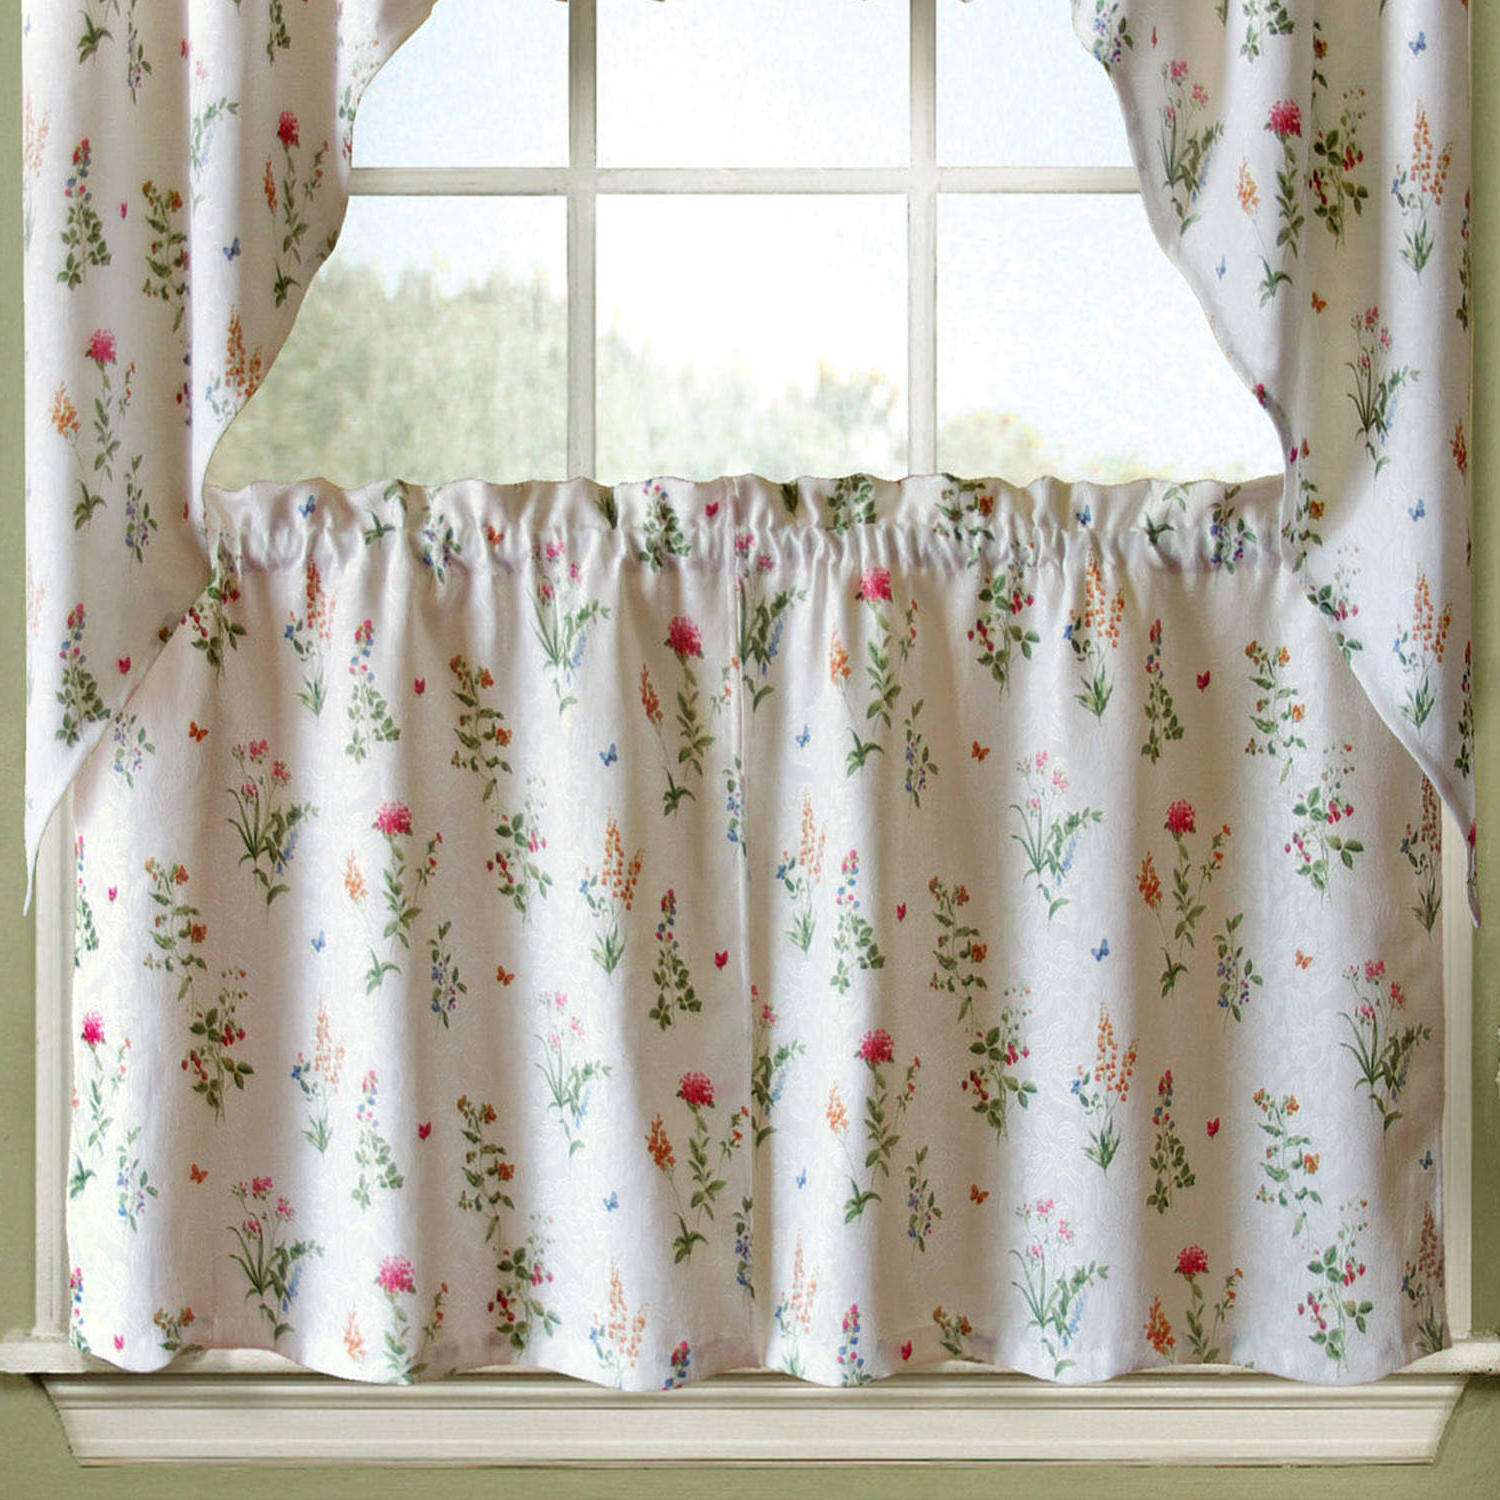 Chardonnay Tier And Swag Kitchen Curtain Sets For Latest English Garden Floral White Jacquard Kitchen Curtains Tier, Valance Or Swag (View 8 of 20)